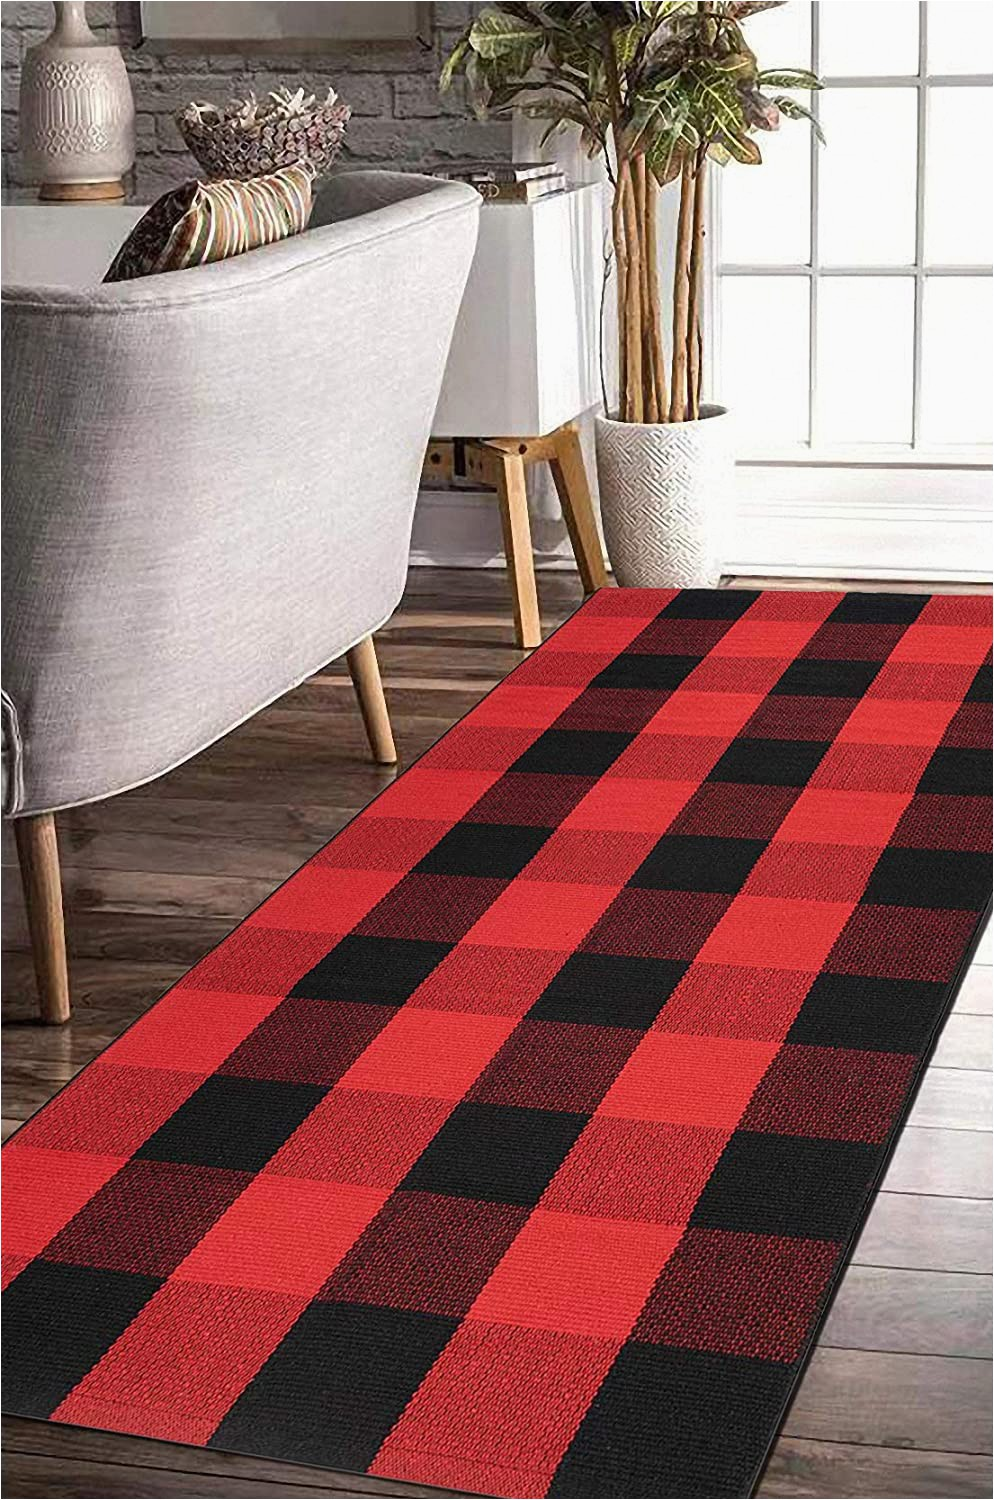 Red and Black Buffalo Check area Rug Earthall Buffalo Plaid Rug Red and Black Rug Cotton Hand Woven Buffalo Check Rug Runner Hallway Runner Washable Plaid Outdoor Rug Entryway Front